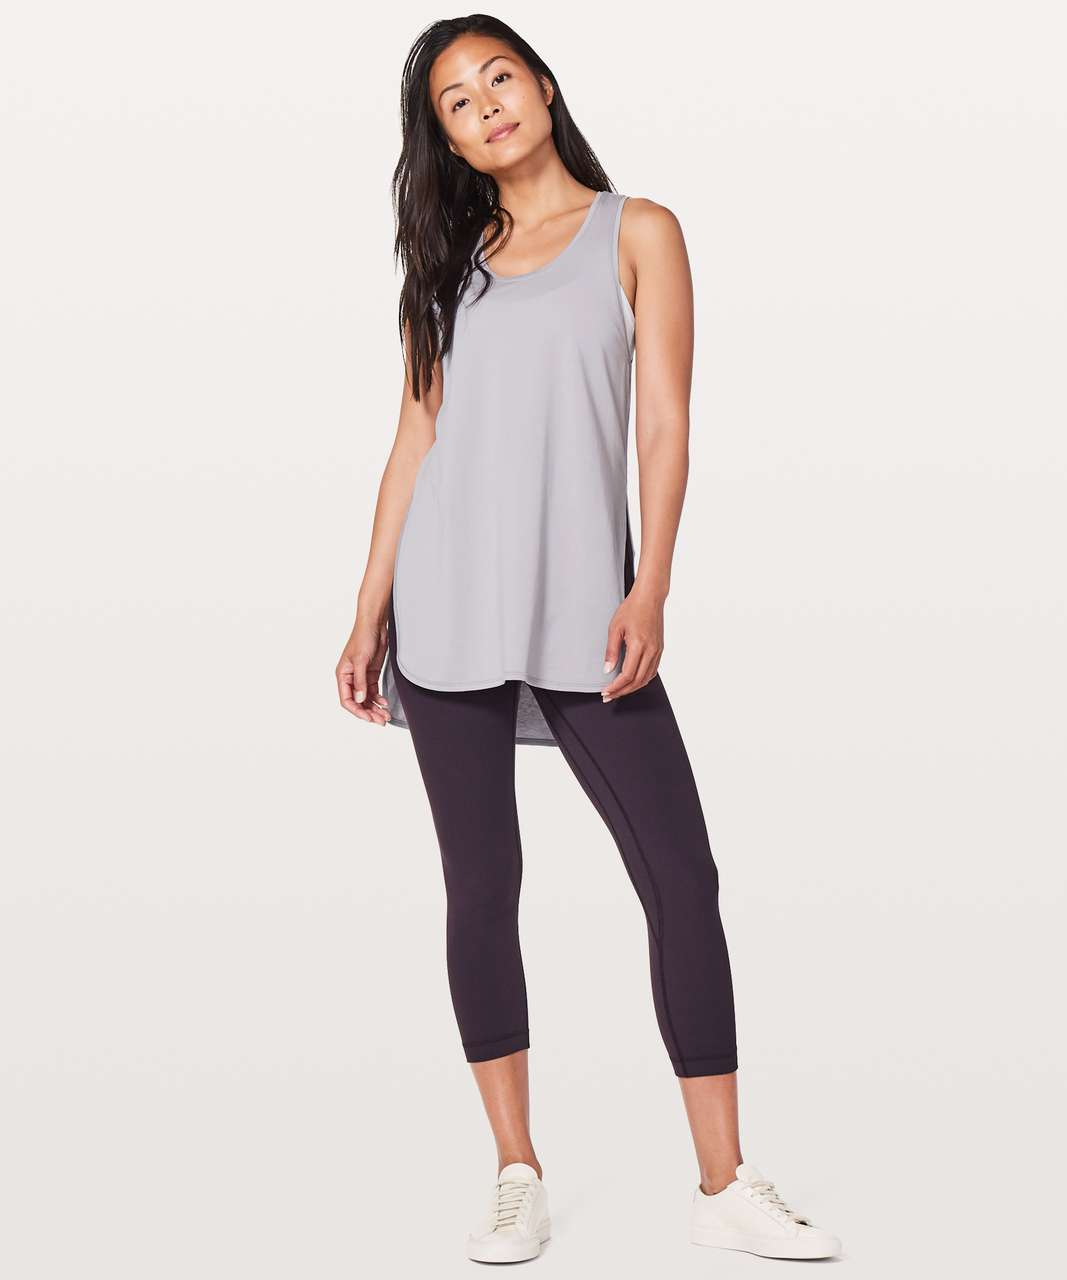 Lululemon Side Story Tank - Lavender Grey